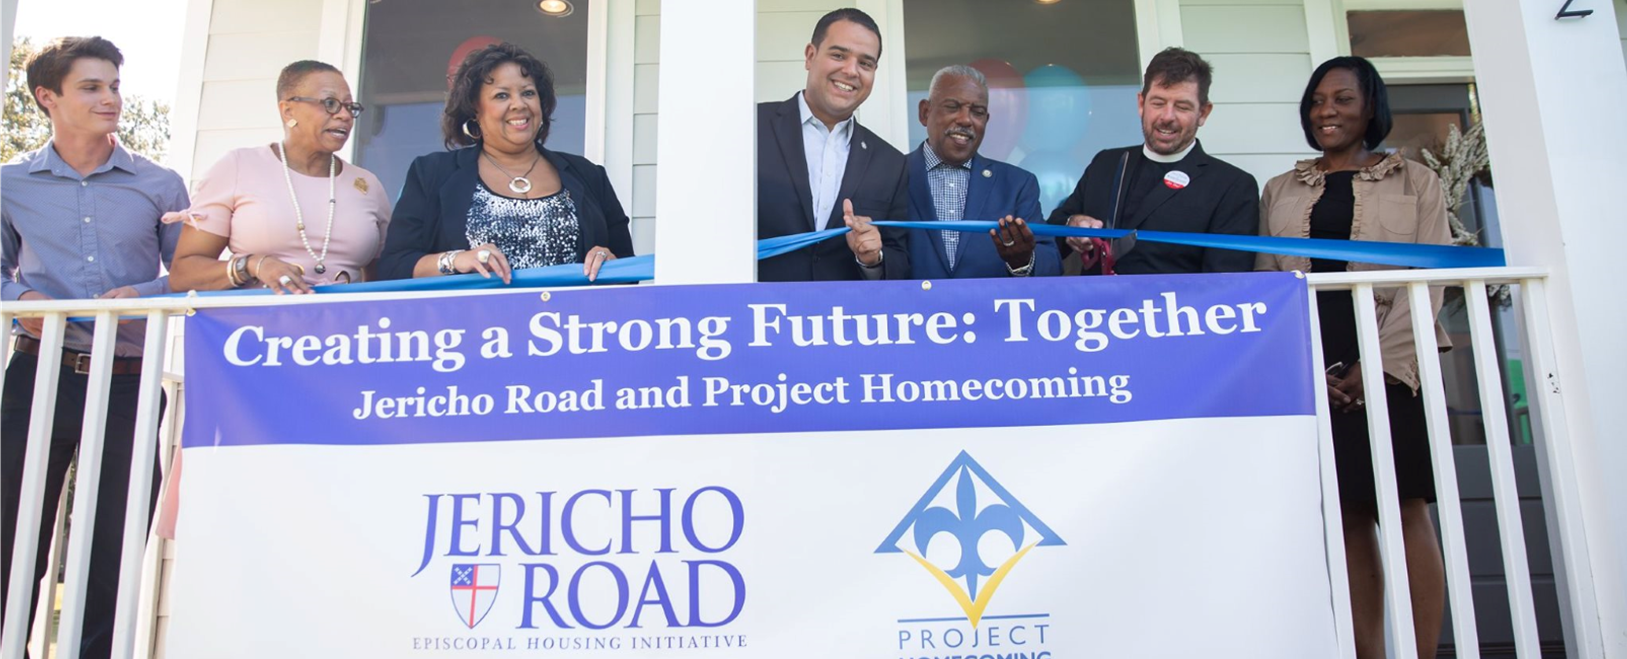 Building Community in Central City: The 15th Anniversary of the Jericho Road Episcopal Housing Initiative